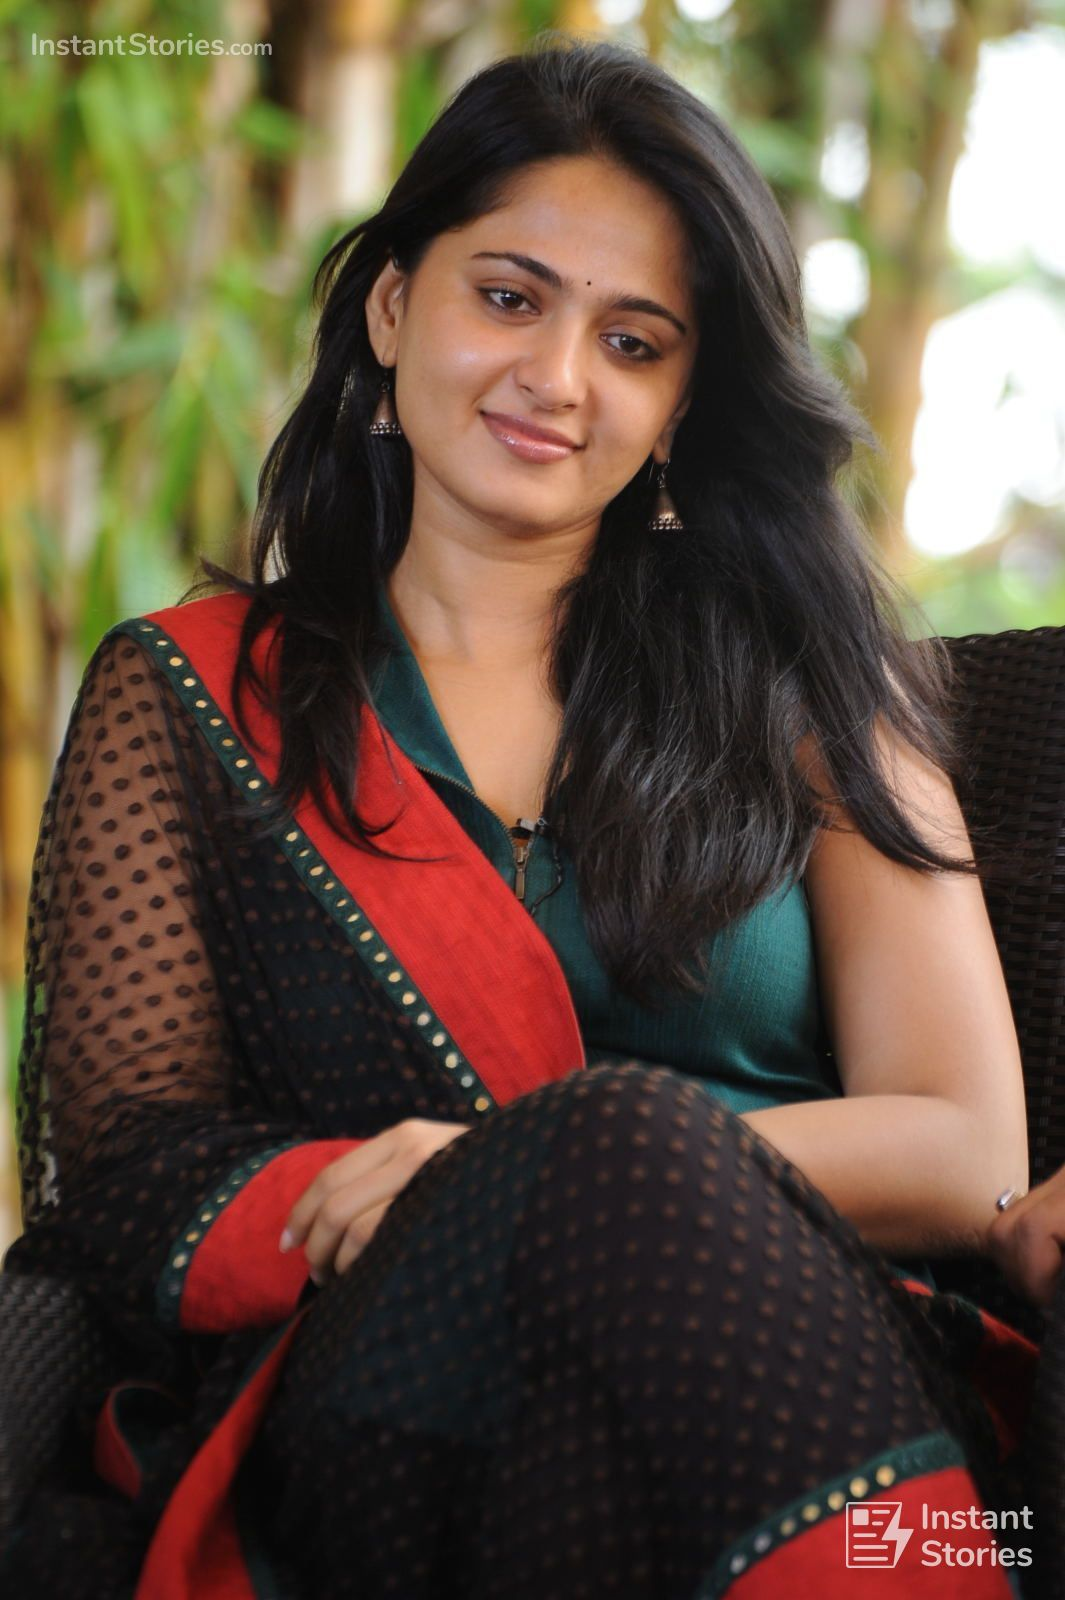 Anushka Shetty Latest Hot HD Images (1445) - Anushka Shetty